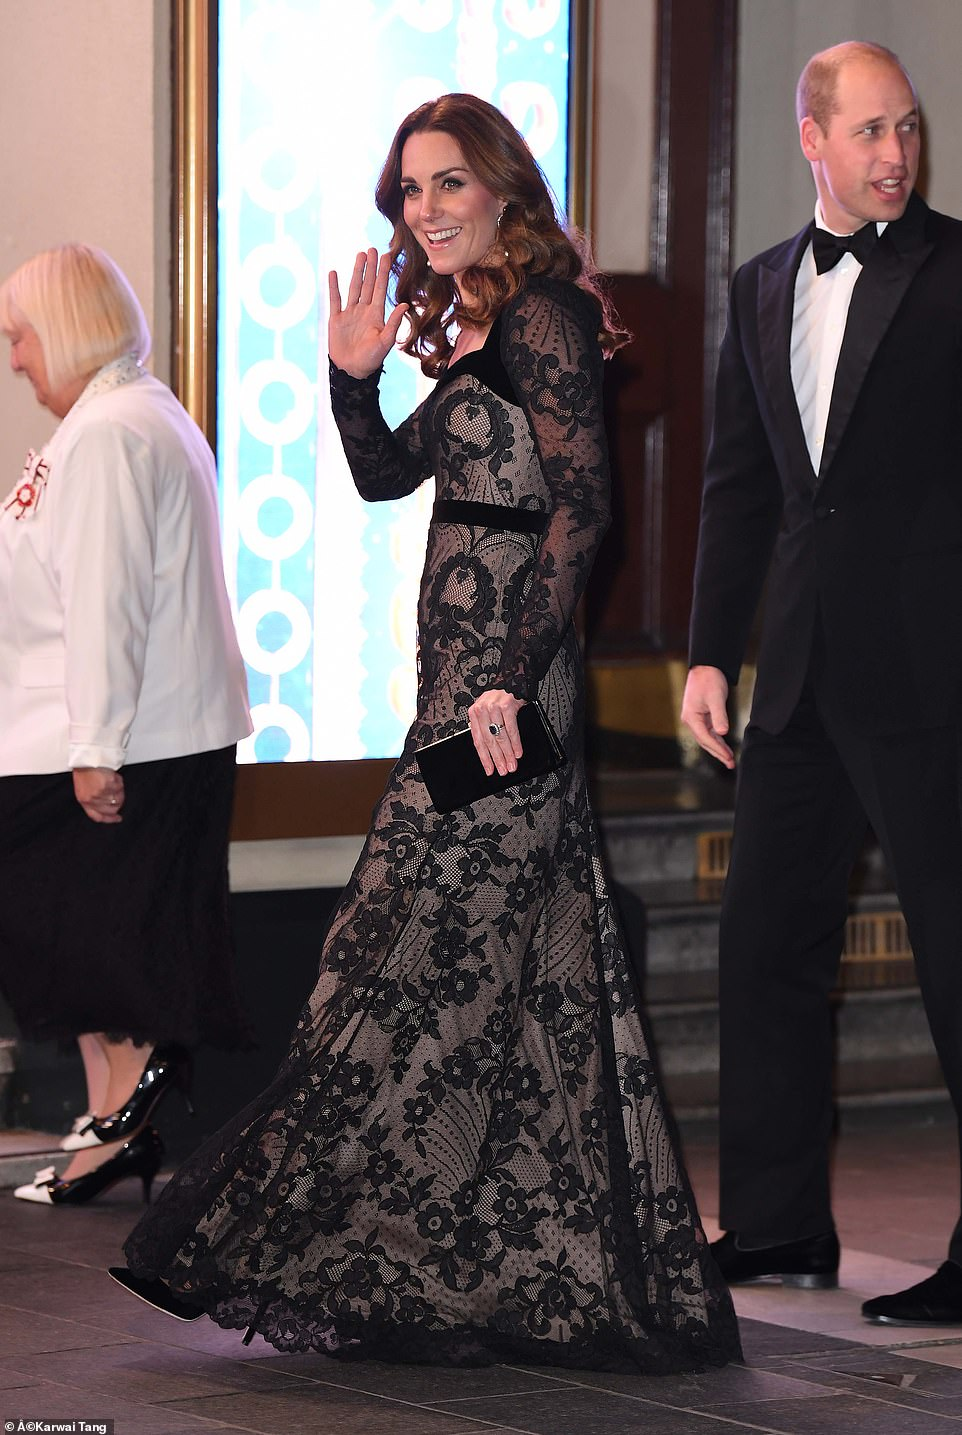 The royal couple greeted a number of performers as well as executives from the Royal Variety Charity and ITV, both before and after the show